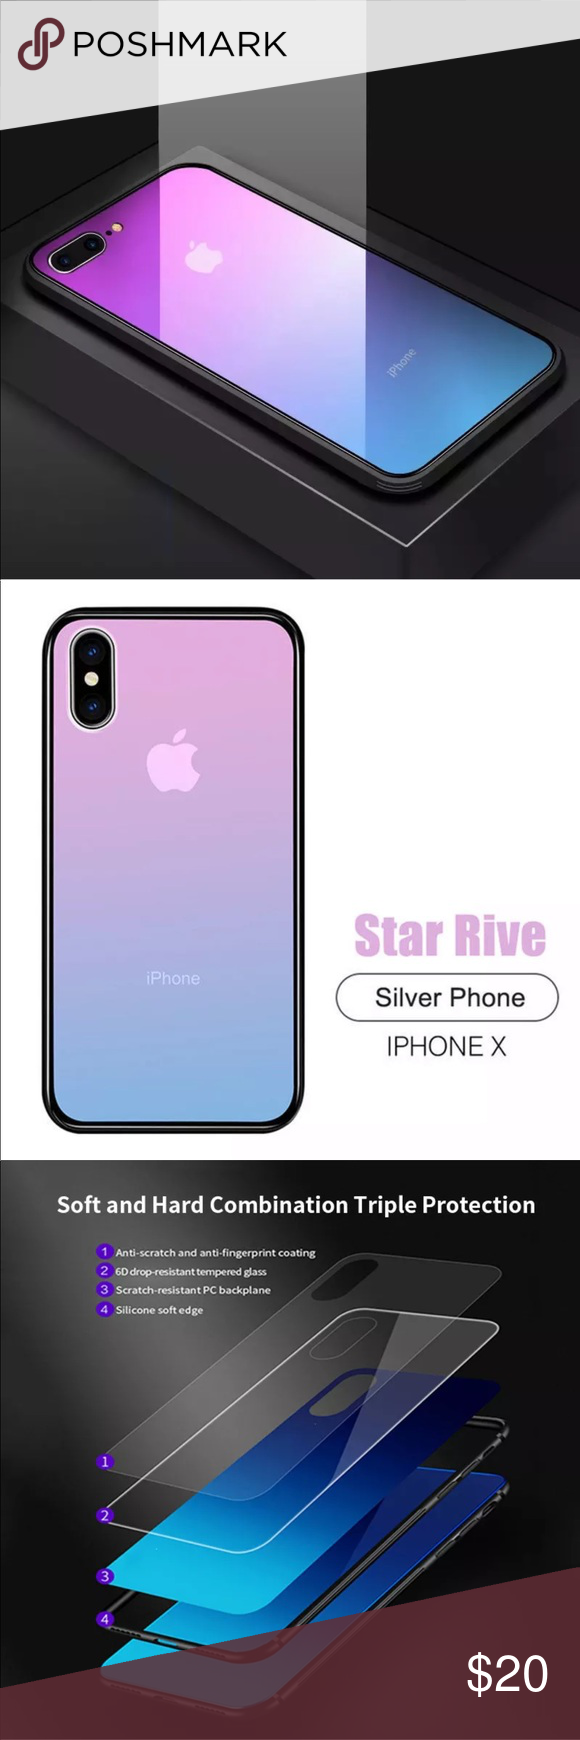 Starrive Gradient Iphone 6 6s 7 8 X S R Max Case The Glass Back Is Made Out Of Enforced Gorilla Glass And It Is 1 With Images Gorilla Glass Phone Case Accessories Iphone